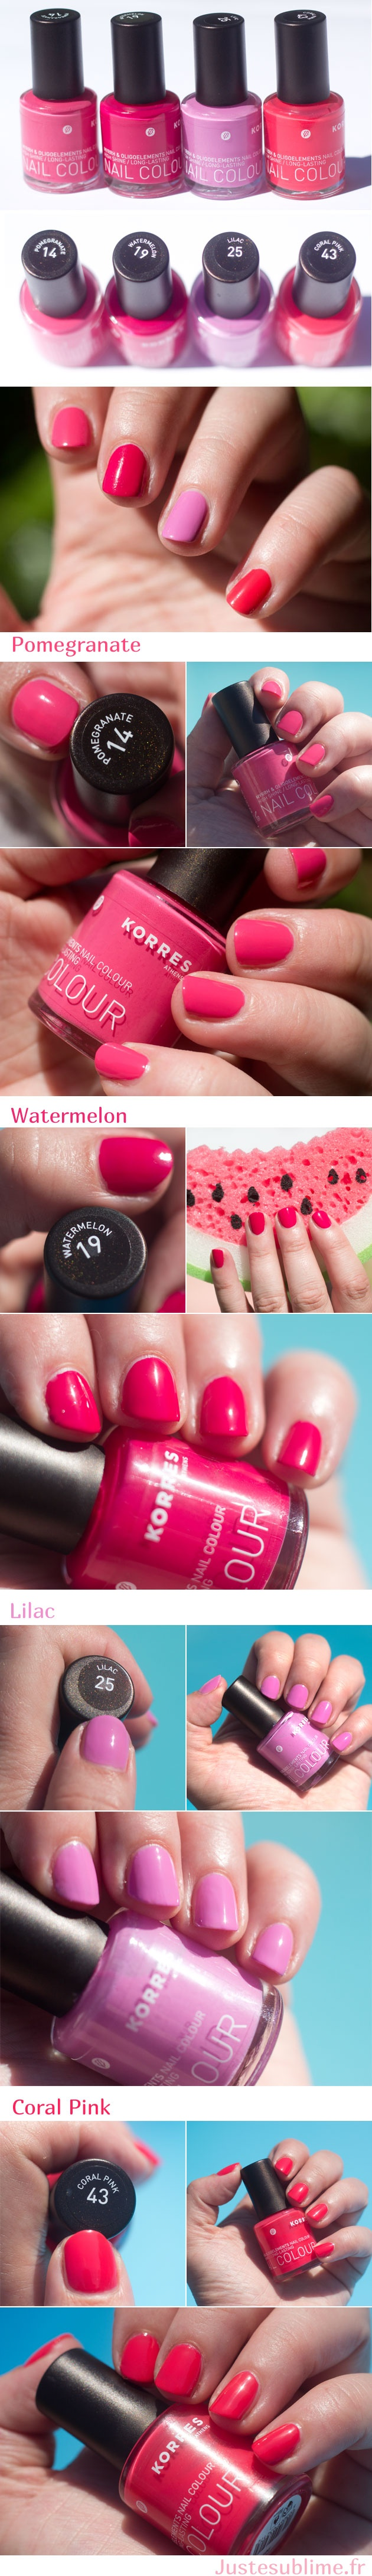 Korres nail polish: safe ingredients, wonderful colors!!! I am so proud that it is a greek product!!